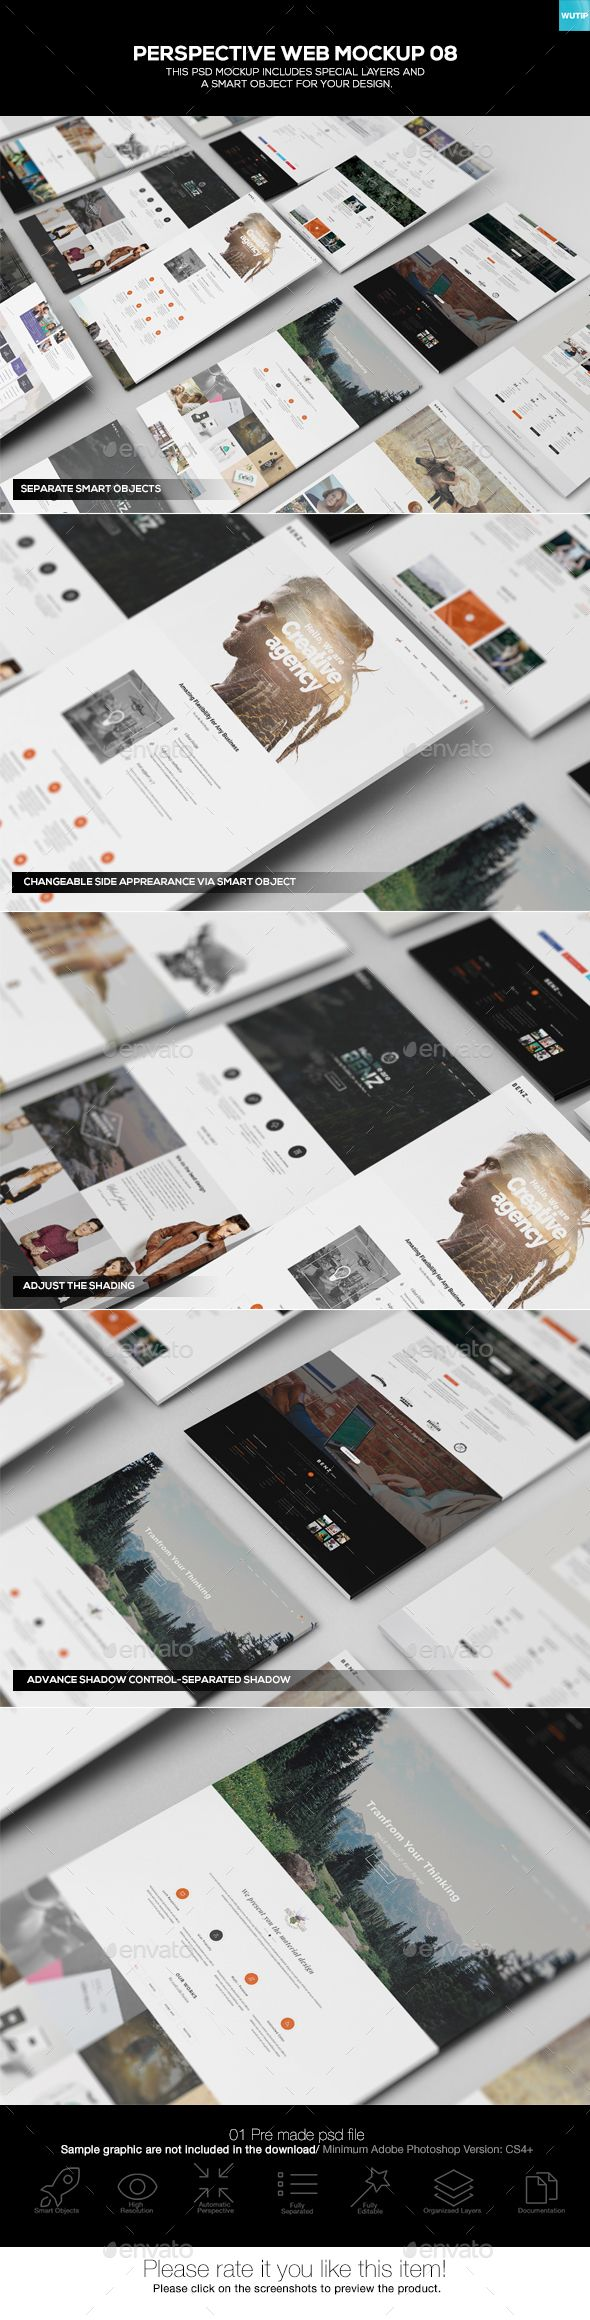 Perspective Web Mockup 08 by Wutip With a view to bringing a super amazing look to your company鈥檚 website and engage the public attention, our web mockup comes out t